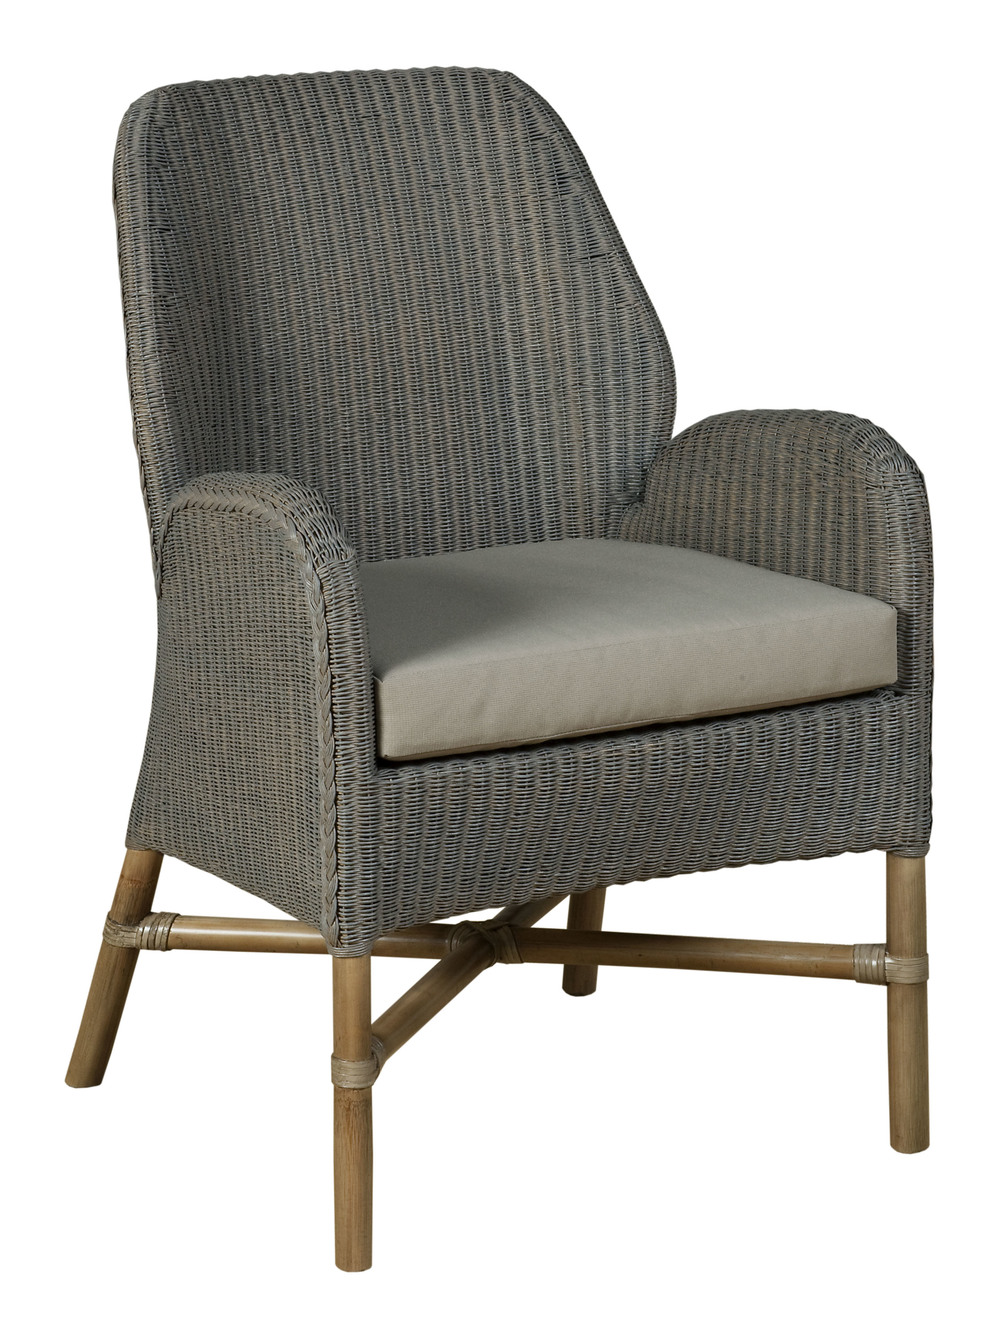 Woodbridge Furniture Company - Woven Arm Chair